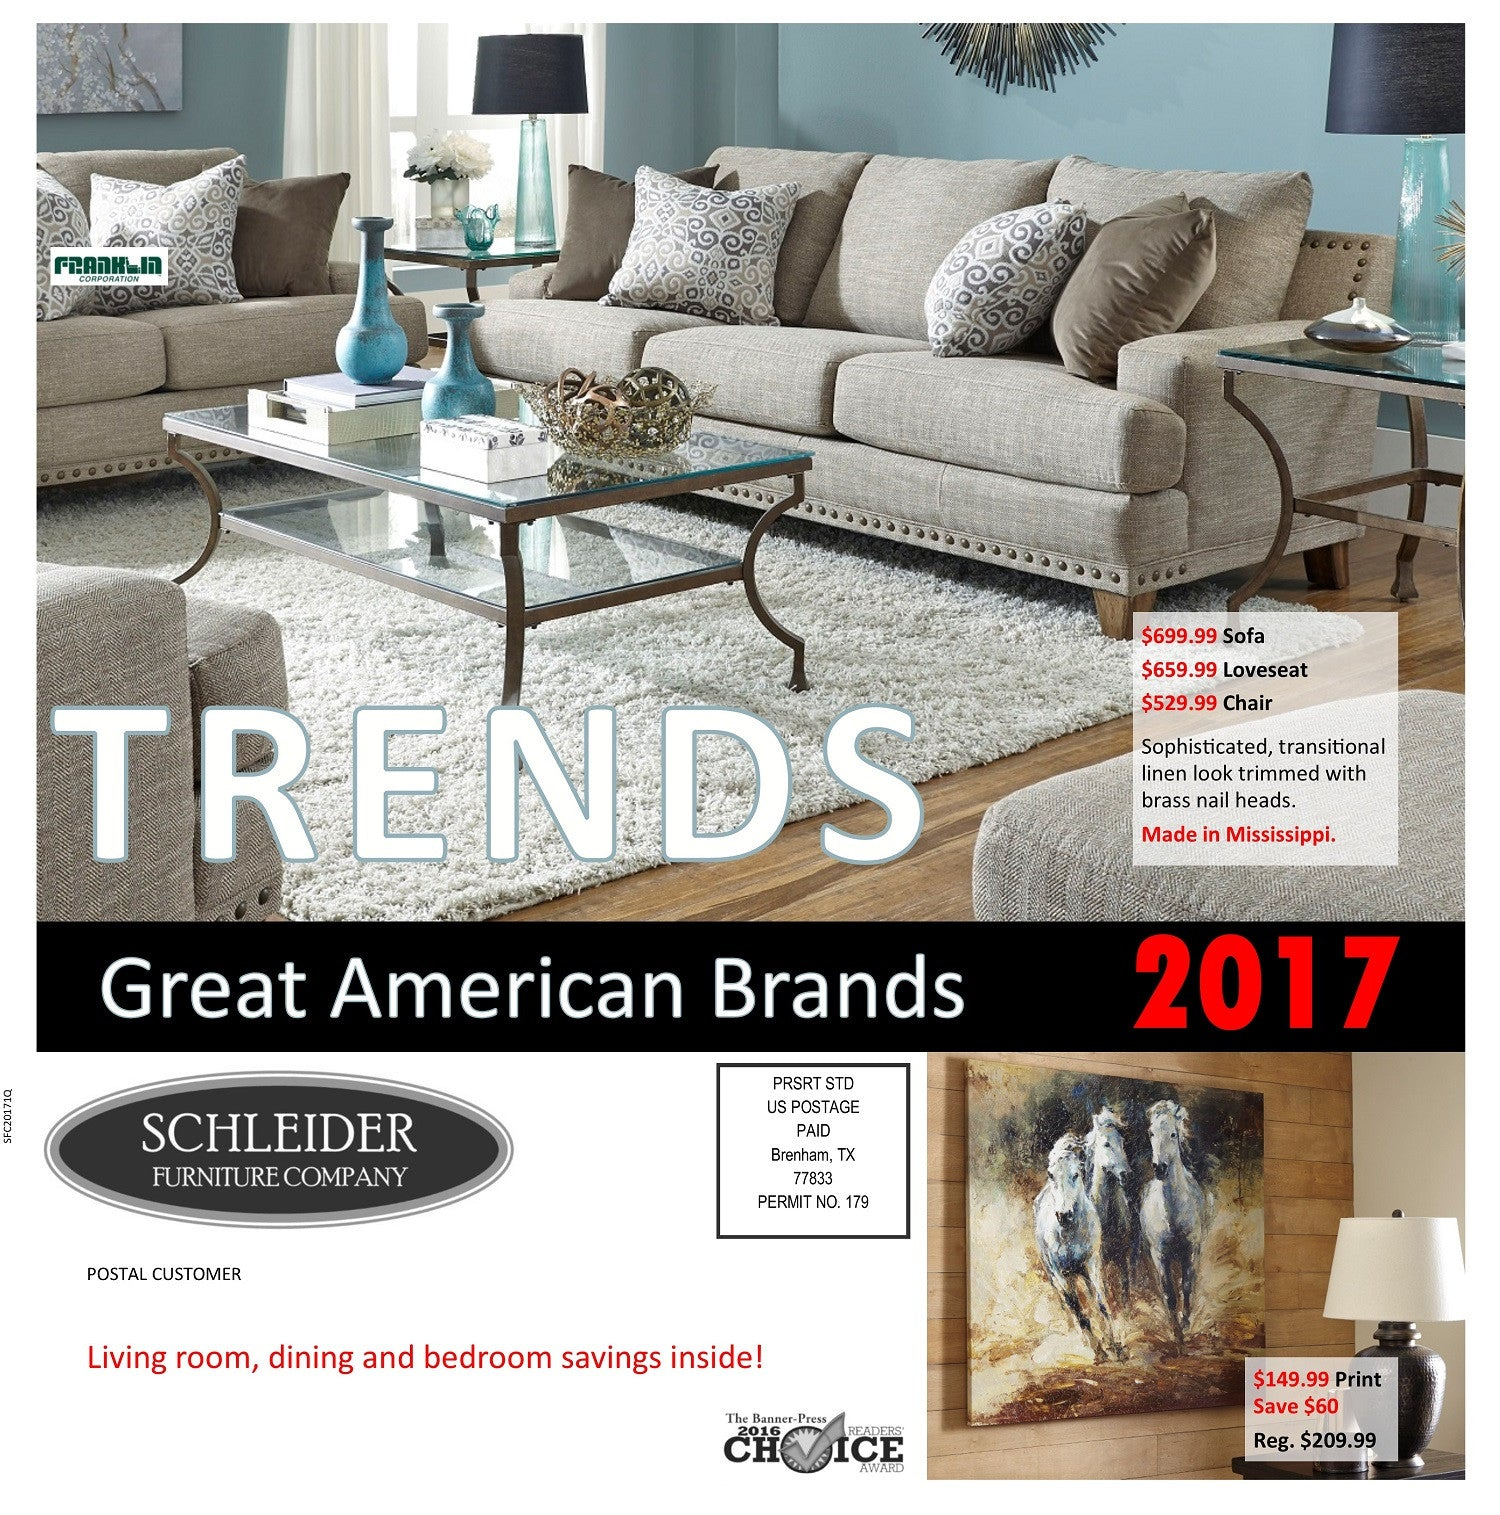 Shop American furniture brands ad featuring living room